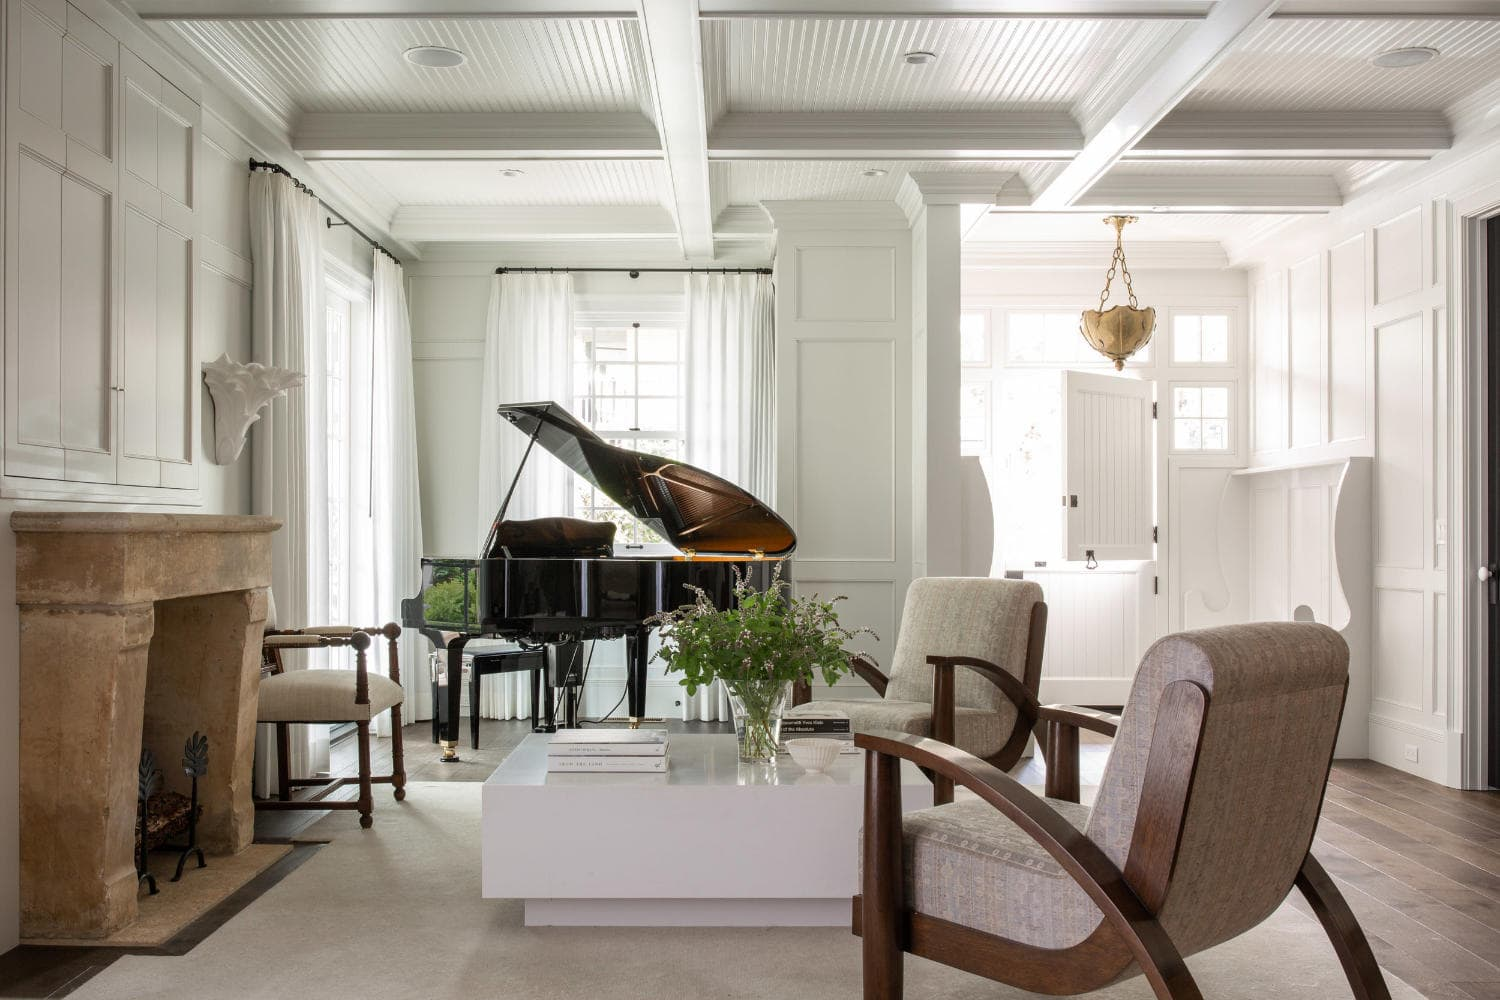 A living room with grand piano and lounge chairs, designed by Amy Meier.